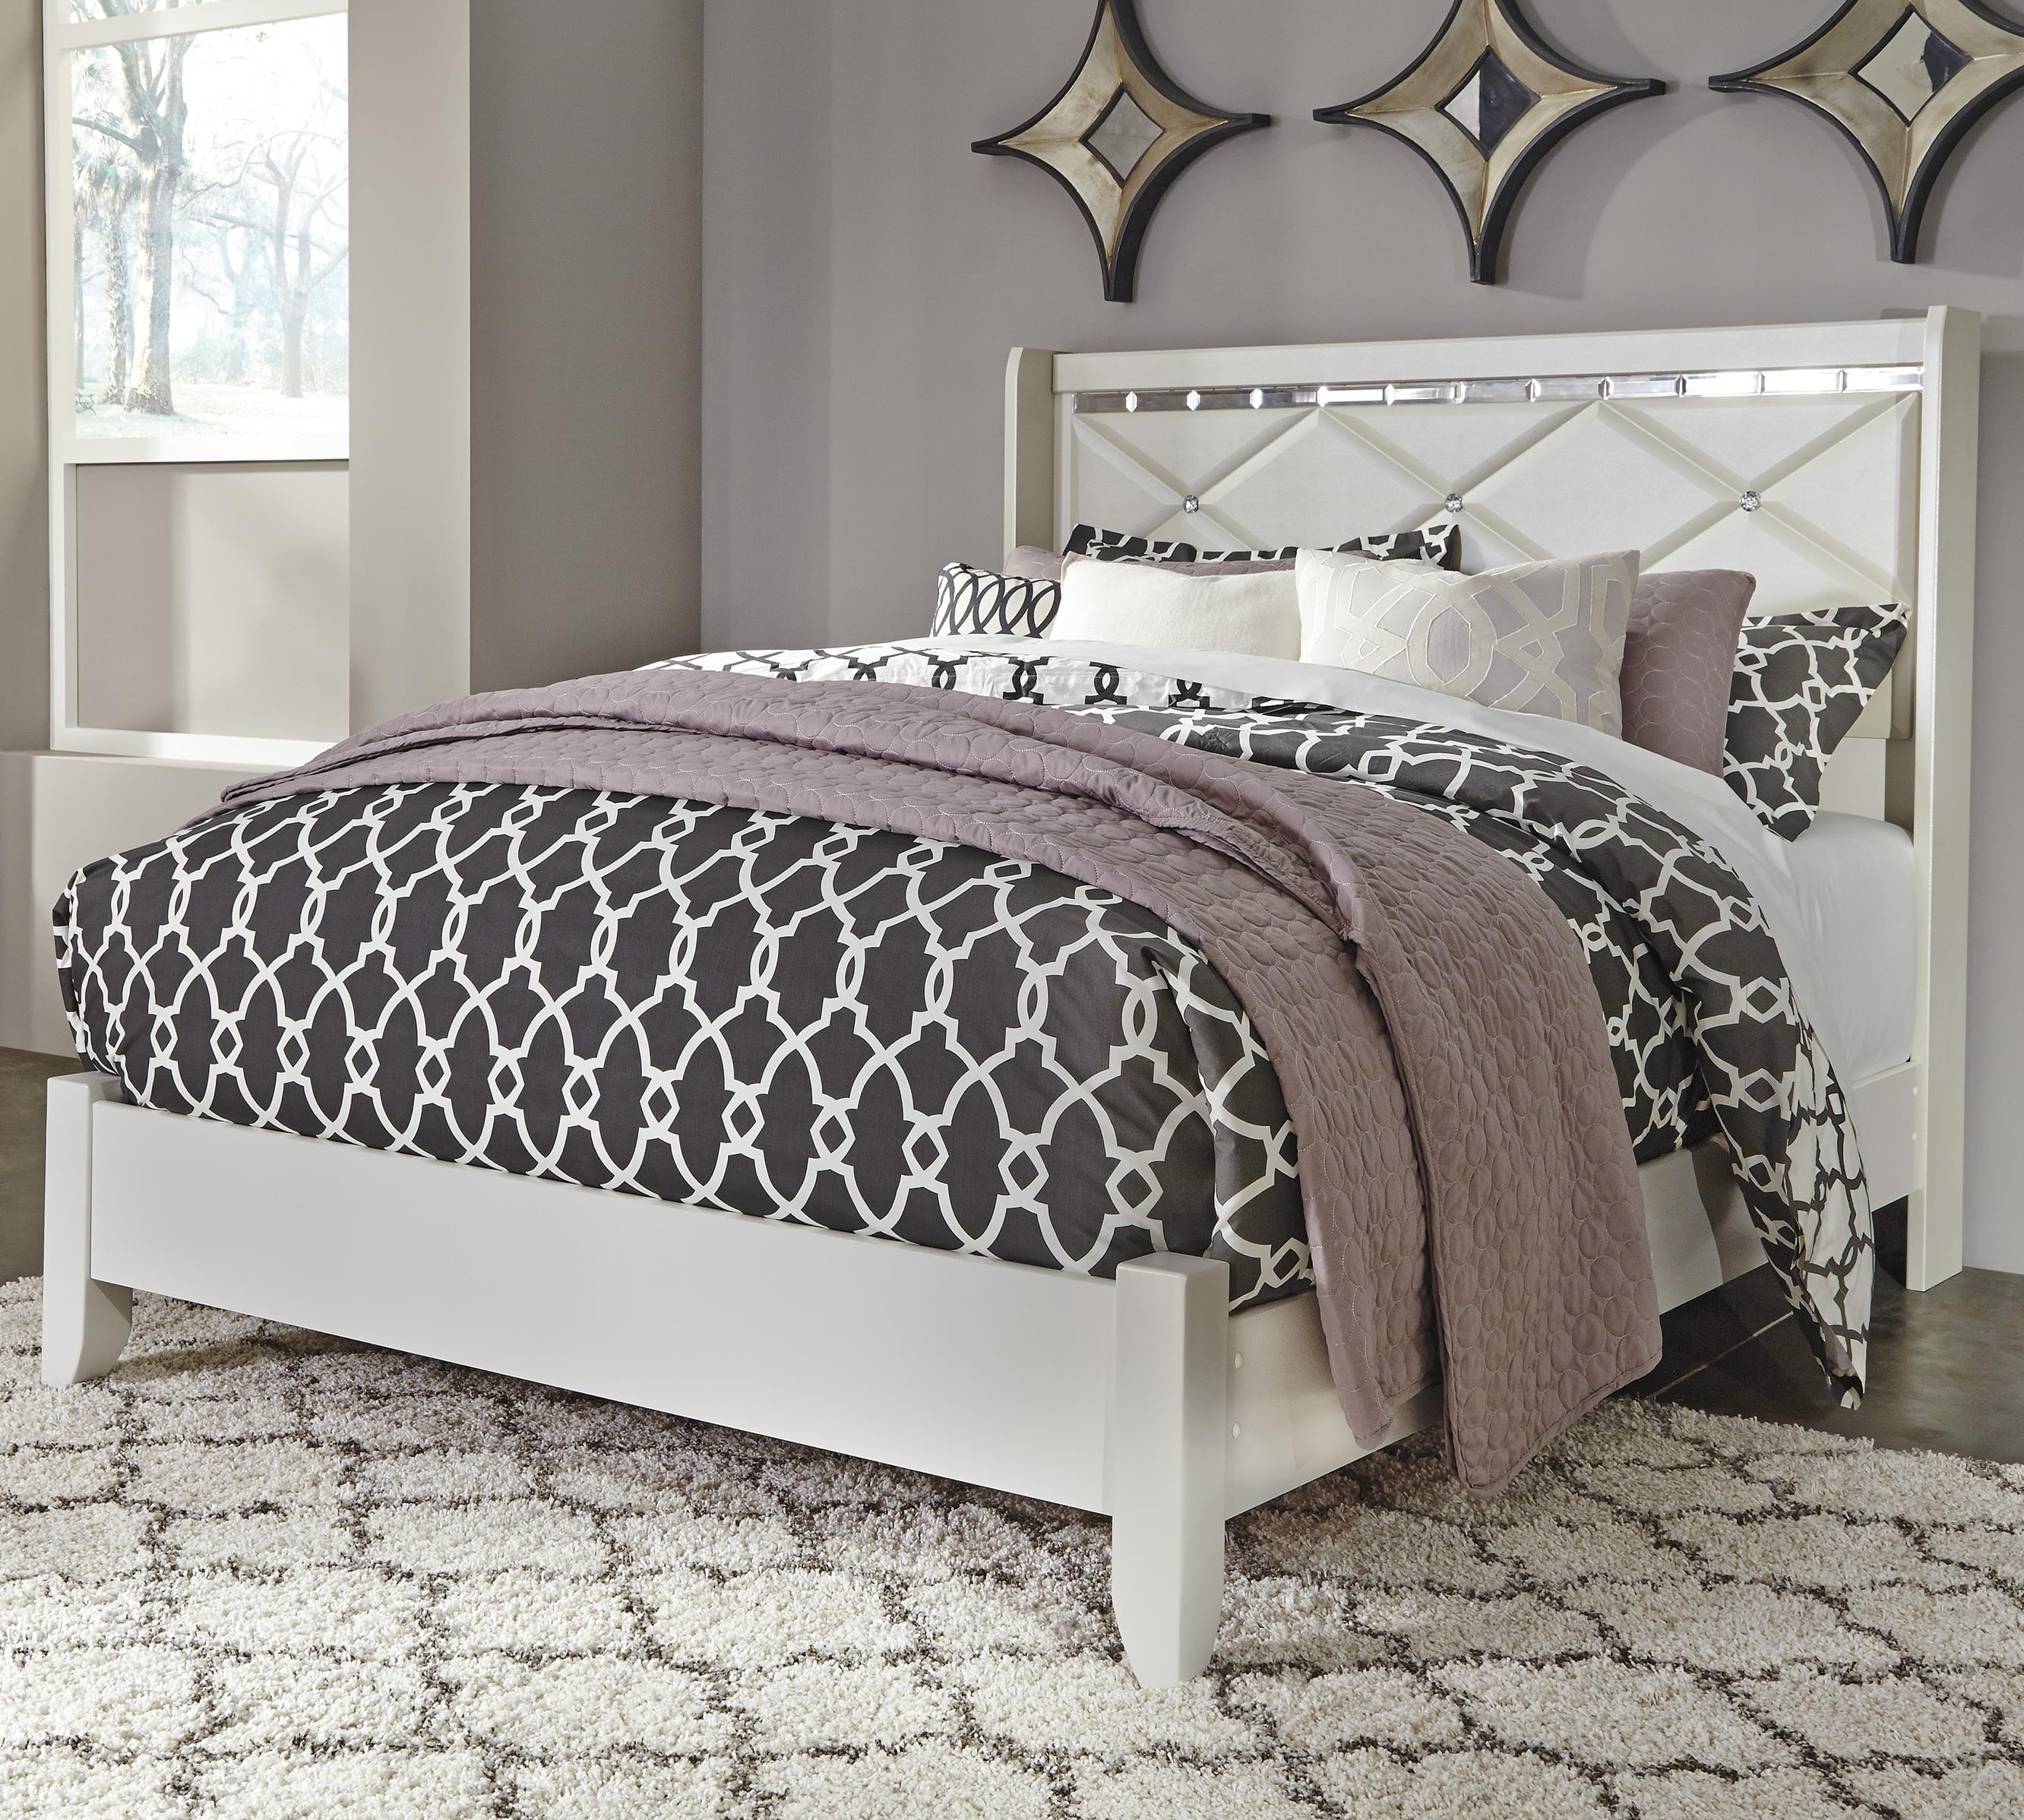 Signature Design by Ashley Dreamur Queen Panel Bed - Item Number: B351-57+54